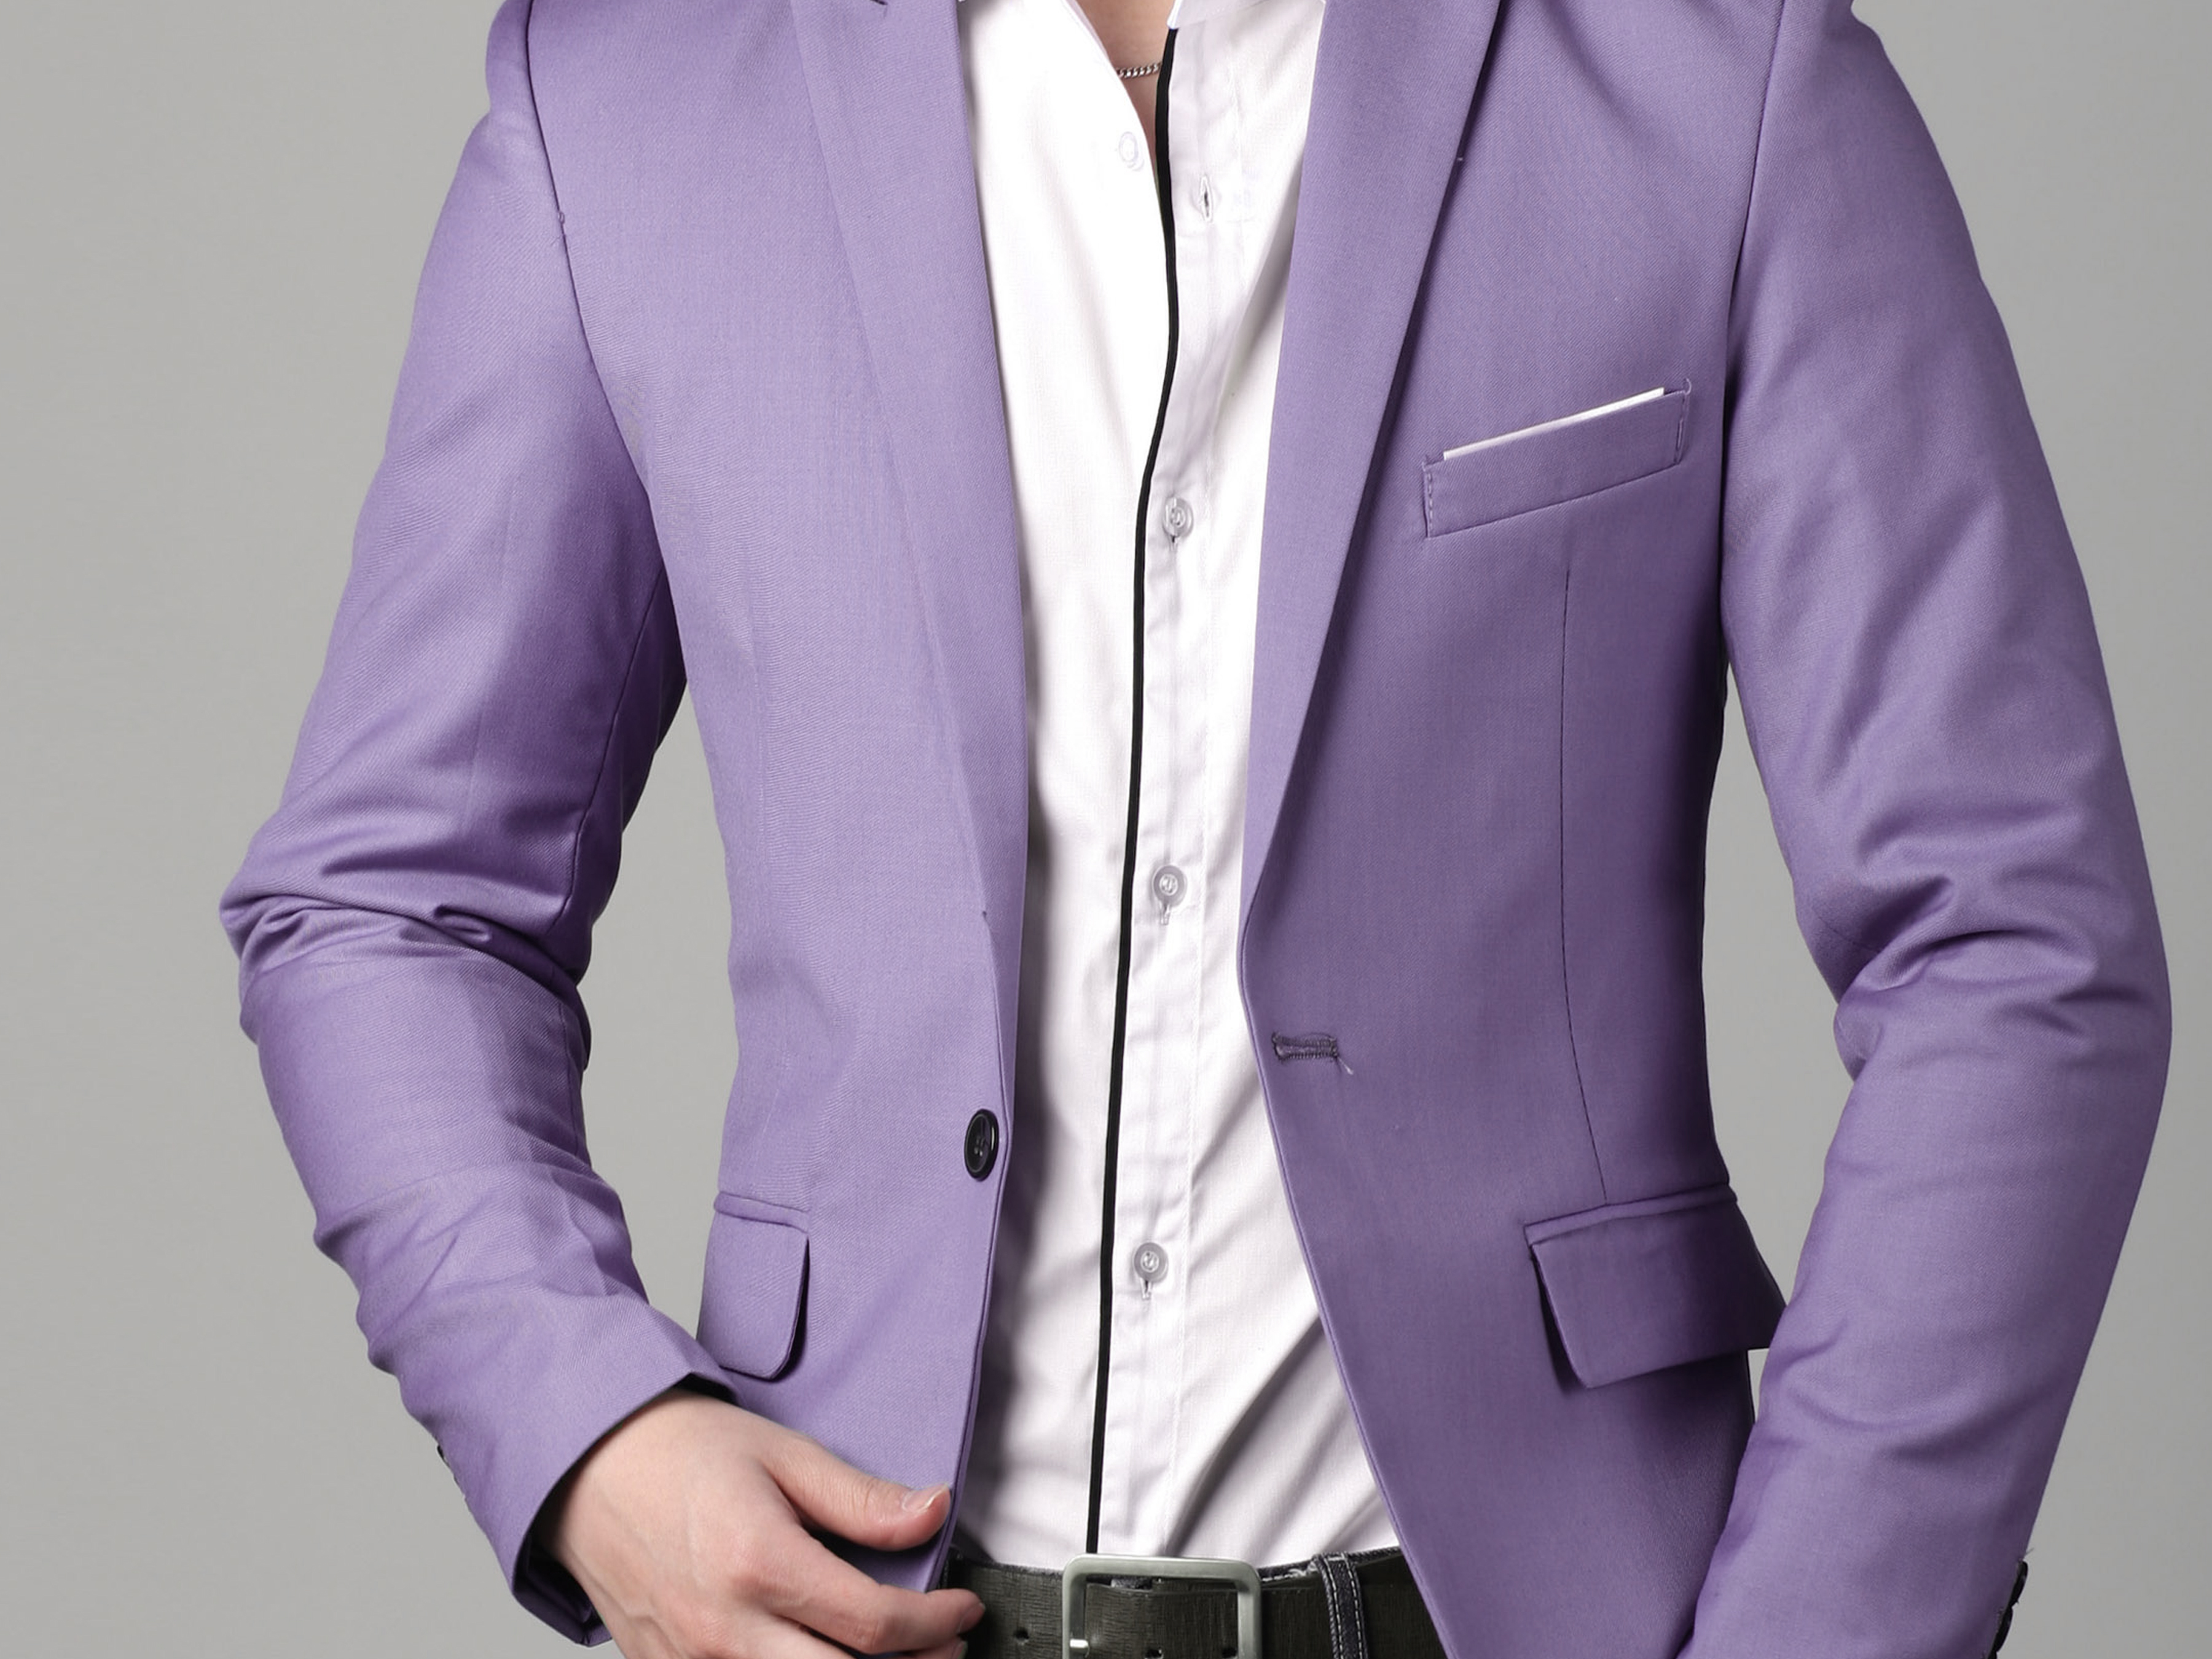 wedding reception dress for male guest reception dresses for wedding Wedding Reception Dress For Male Guest 41